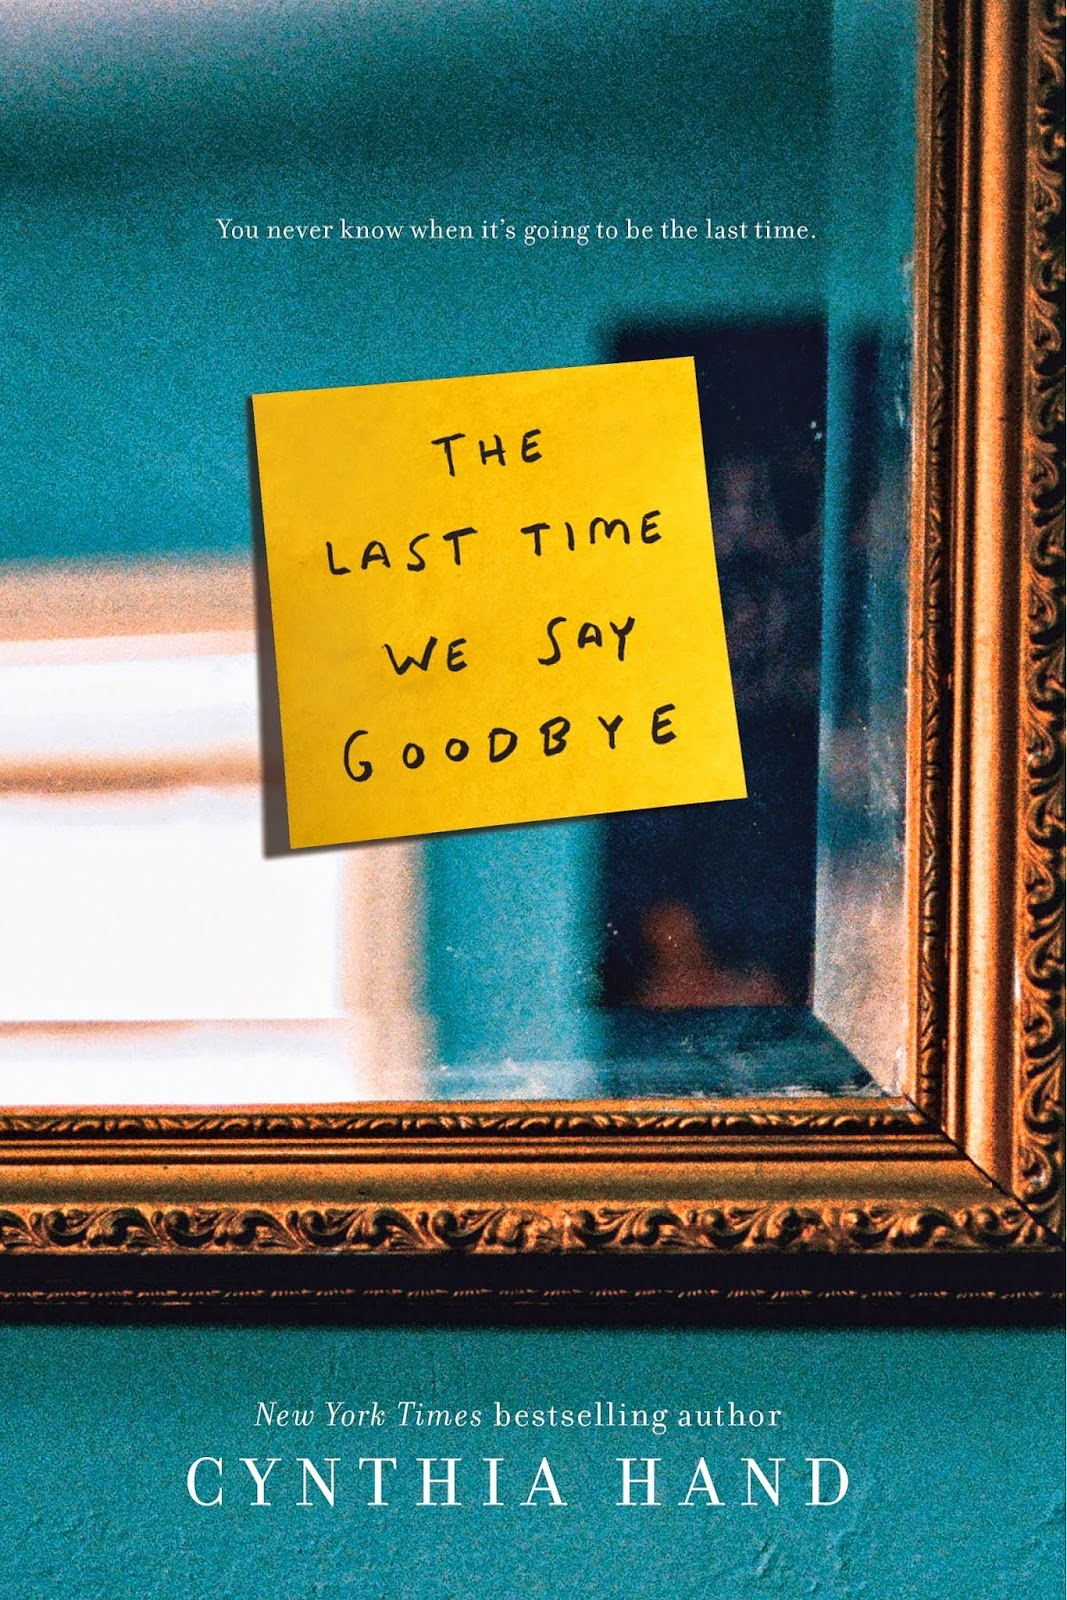 The Last Time We Said GoodBye by Cynthia Hand